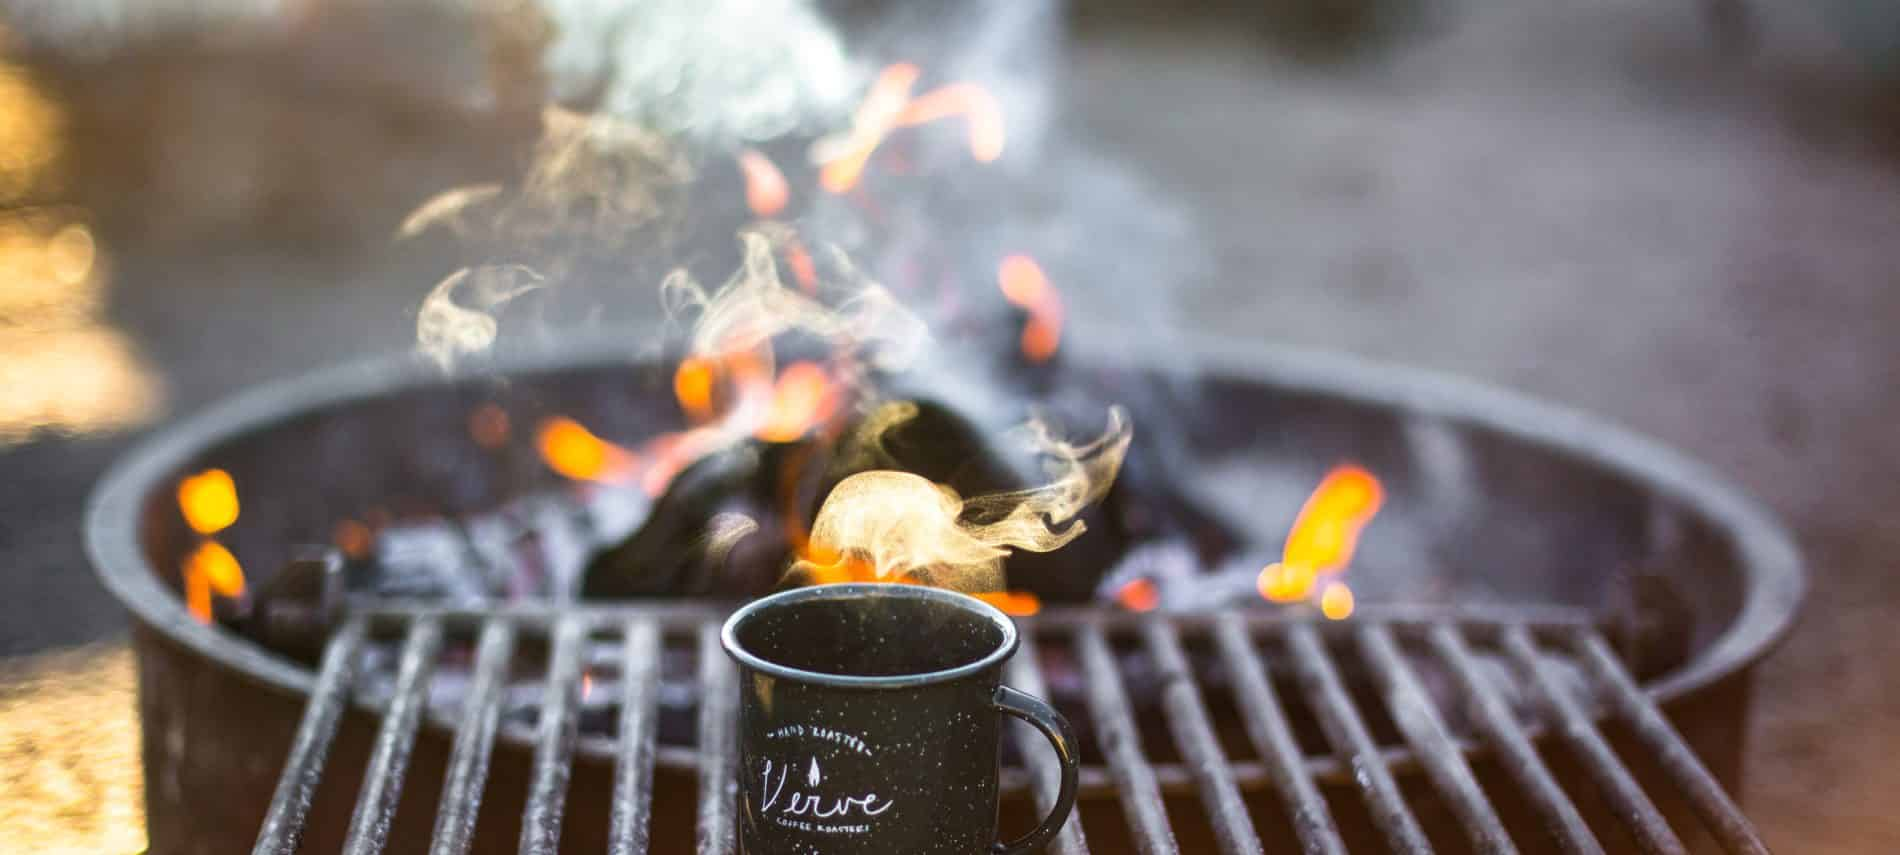 grilled breakfasts